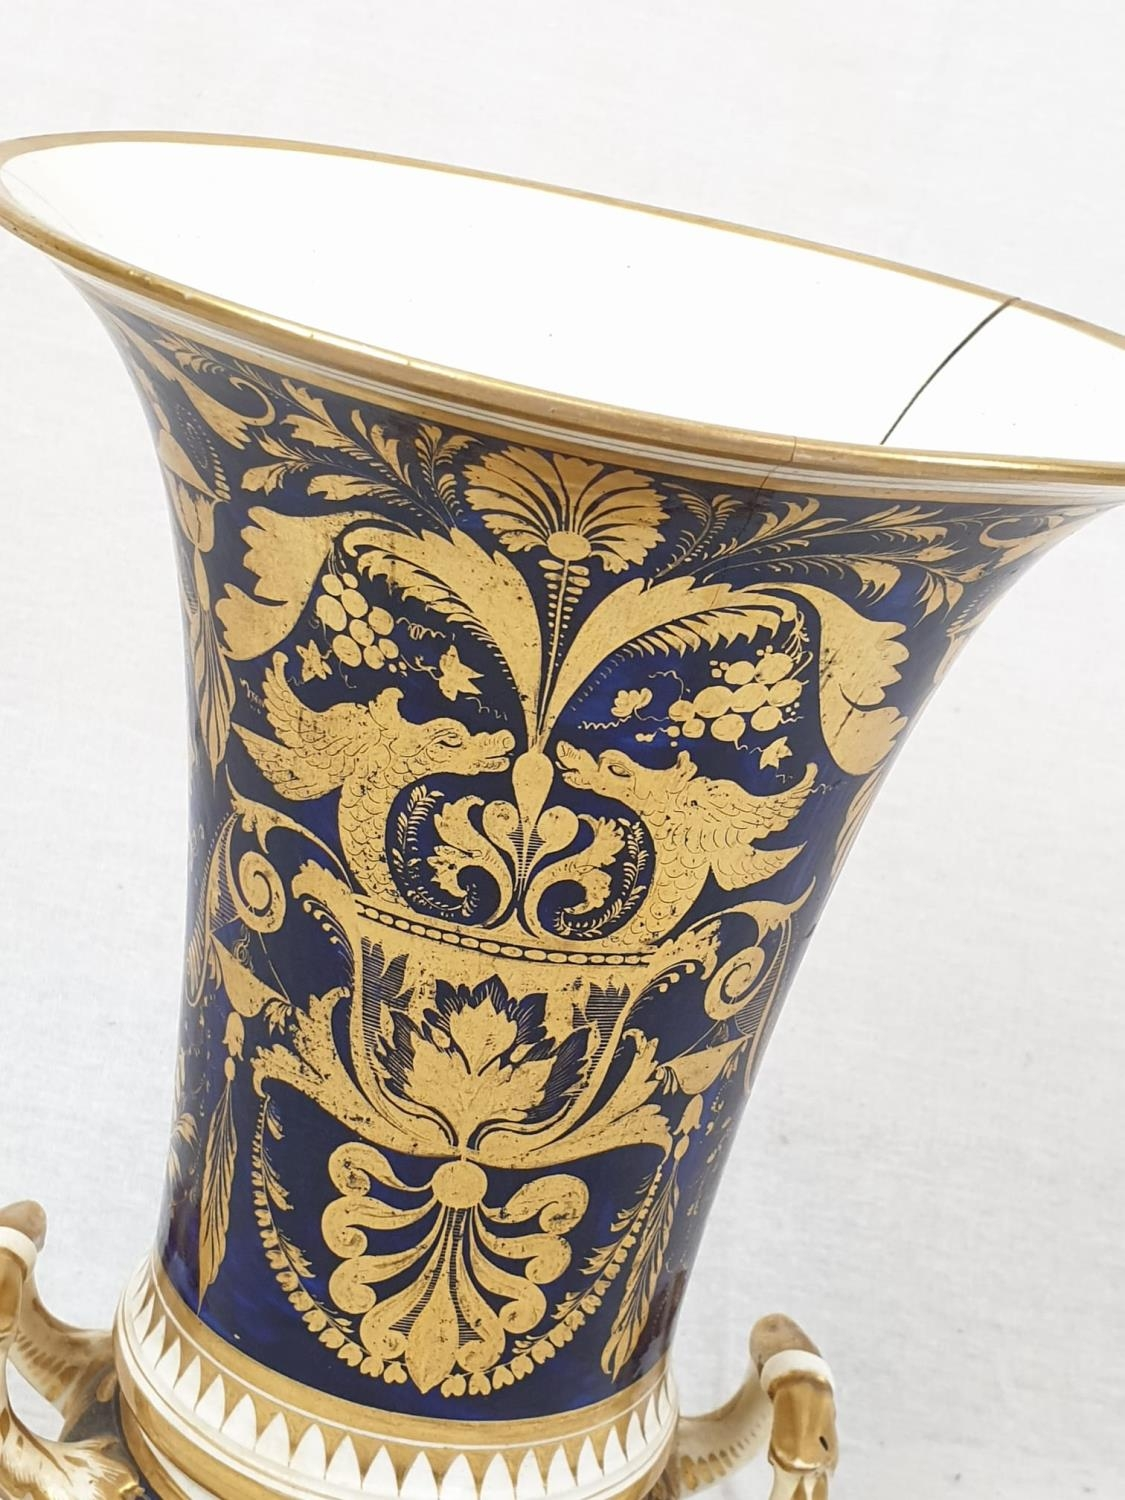 Royal Derby (Crown): In Spain Vase. Spanish 1830. Beautifully Decorated but damaged firing cracks. - Image 5 of 11